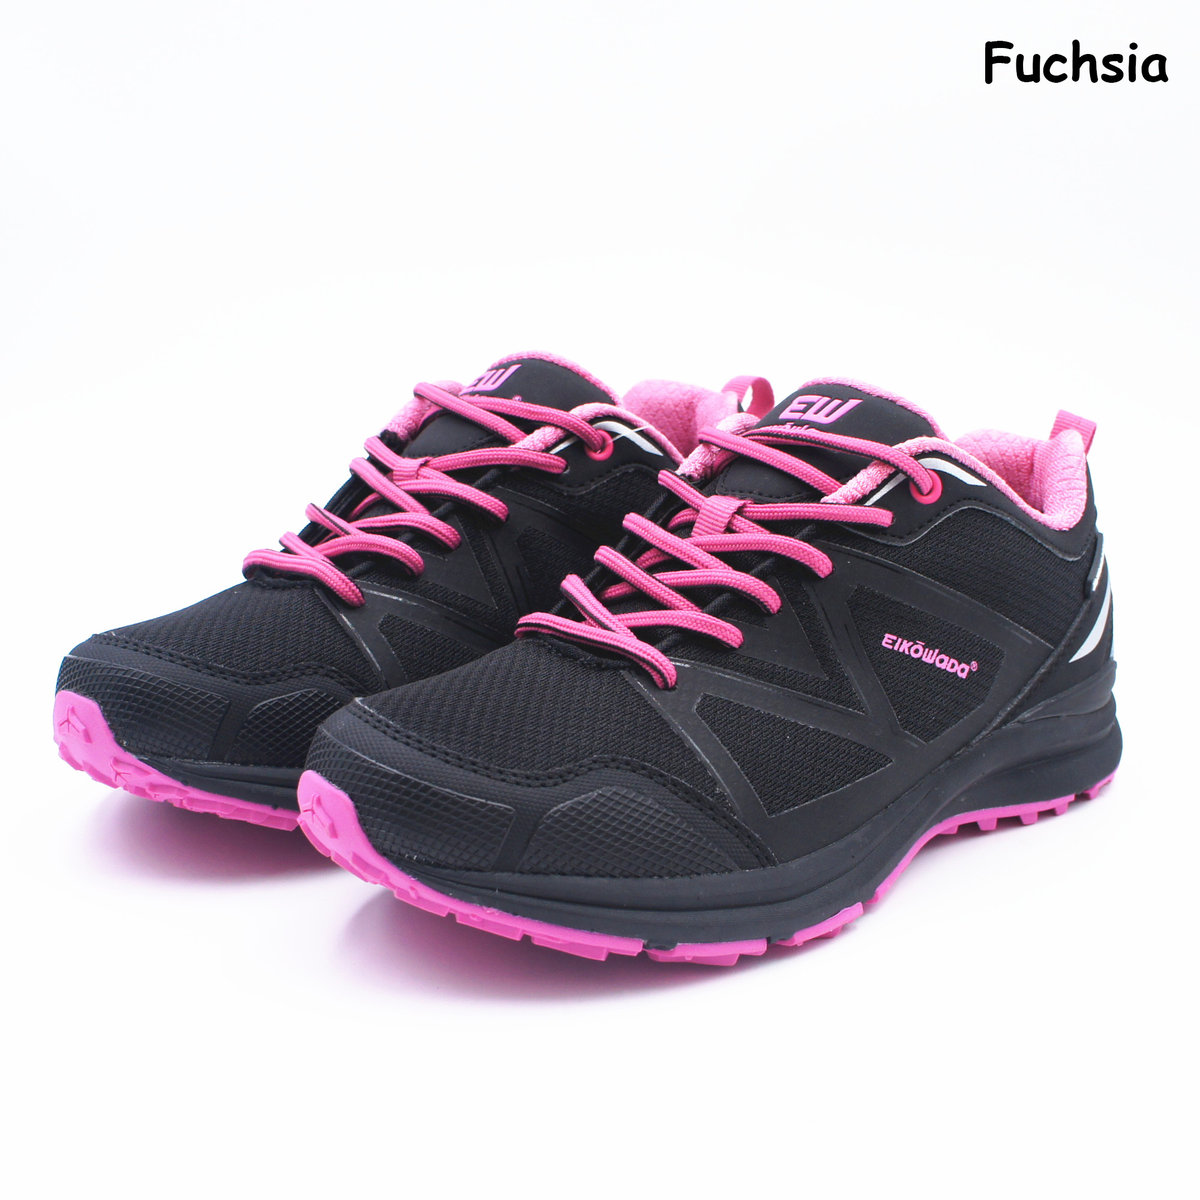 Women Sympatex Waterproof Runnning Shoes